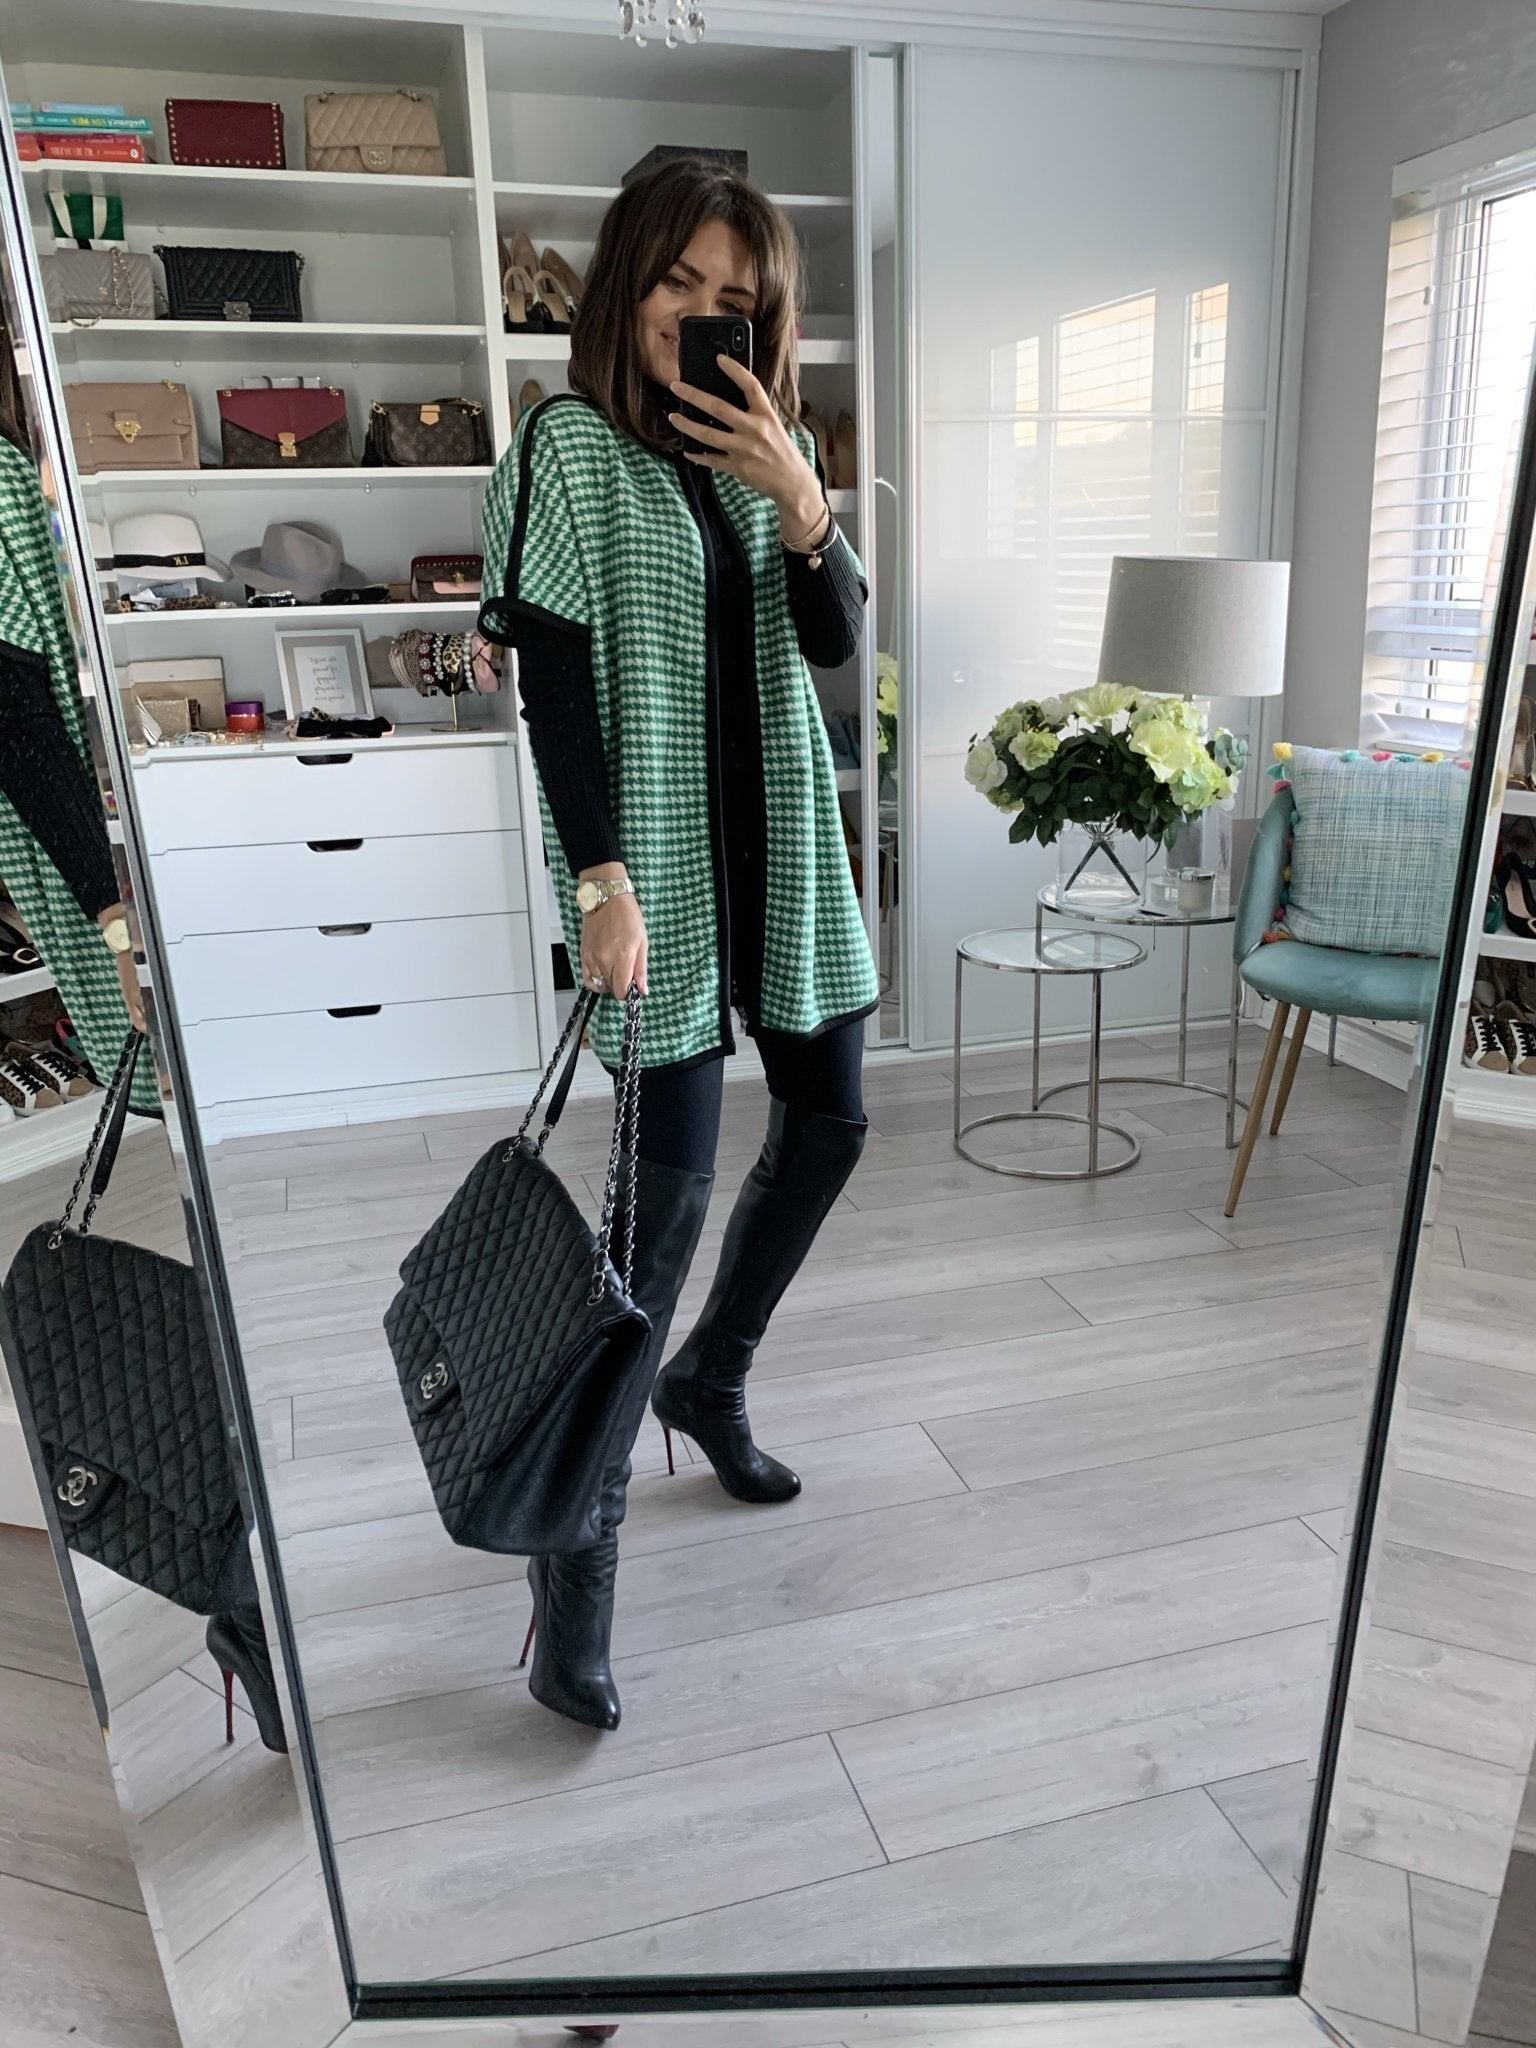 Sarah Houndstooth Cardigan In Green - The Walk in Wardrobe